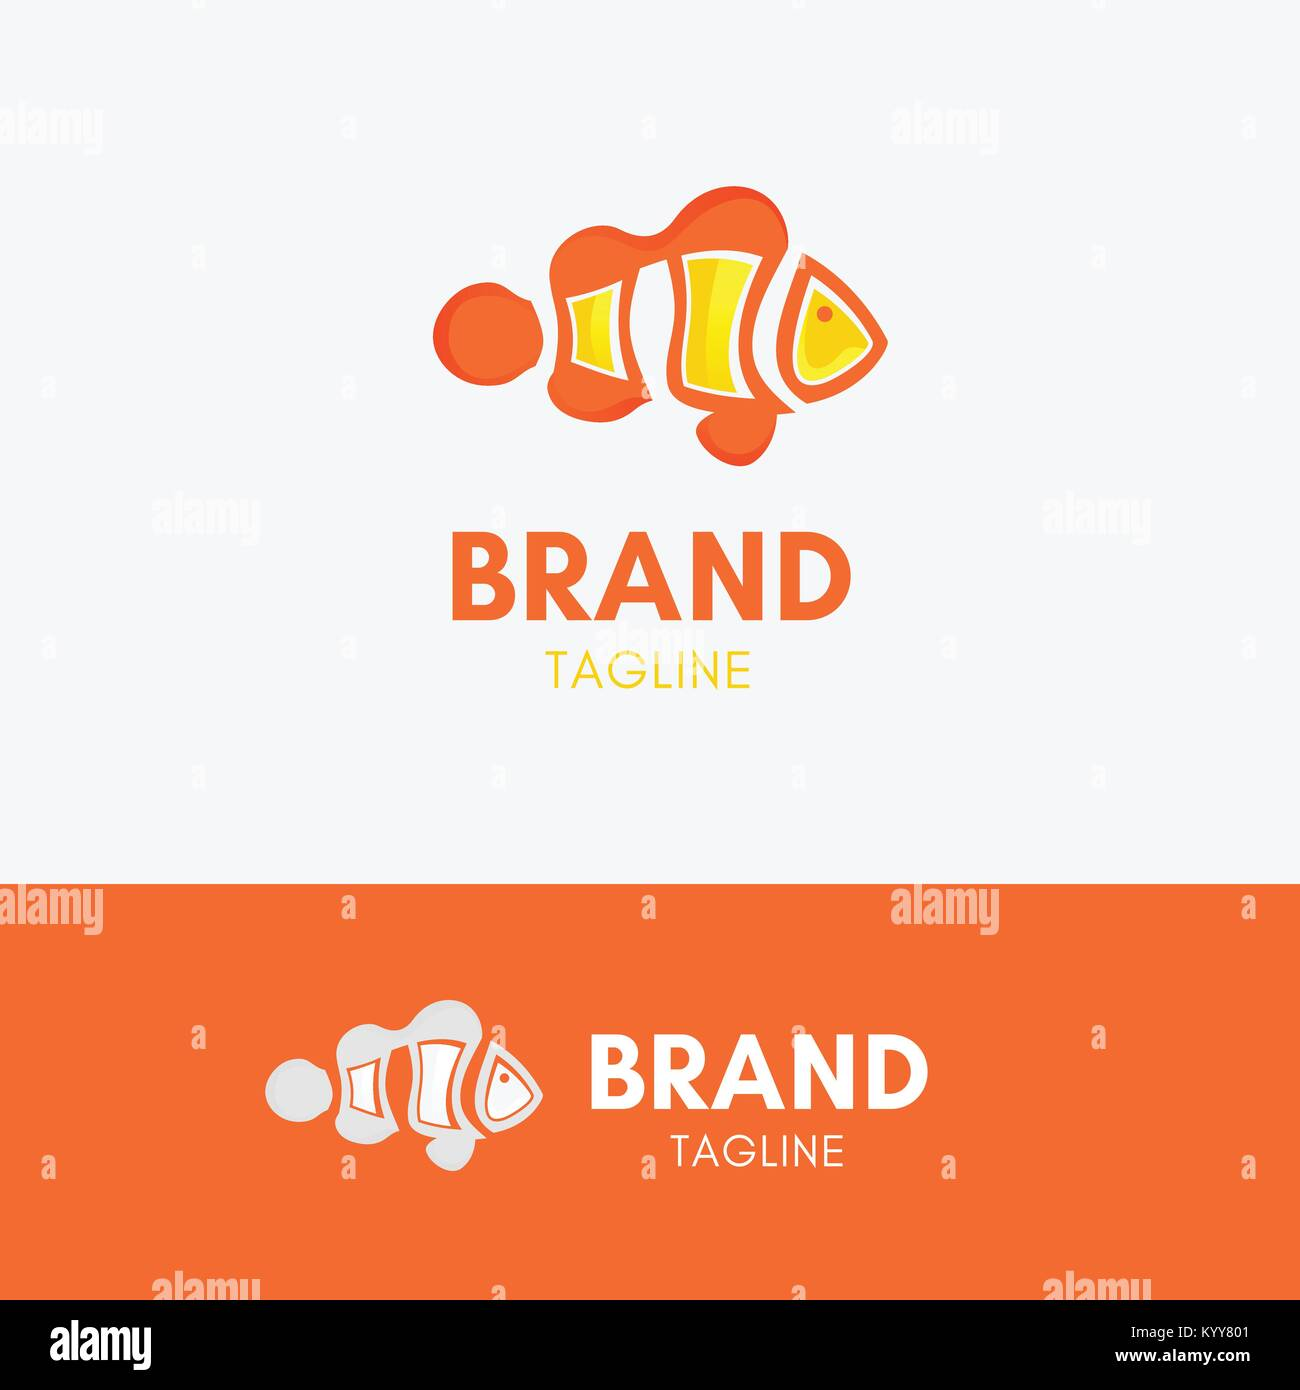 clown fish logo template element symbol with orange and yellow color